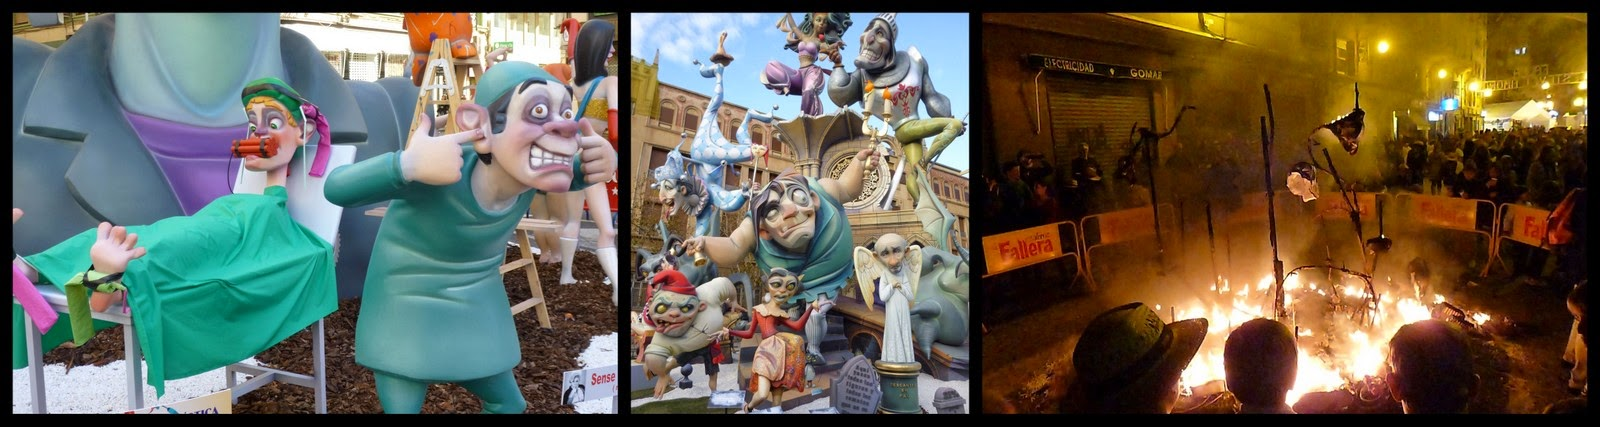 Ryanair Weekend Destination Ideas: Las Fallas Festival in Valencia, Spain